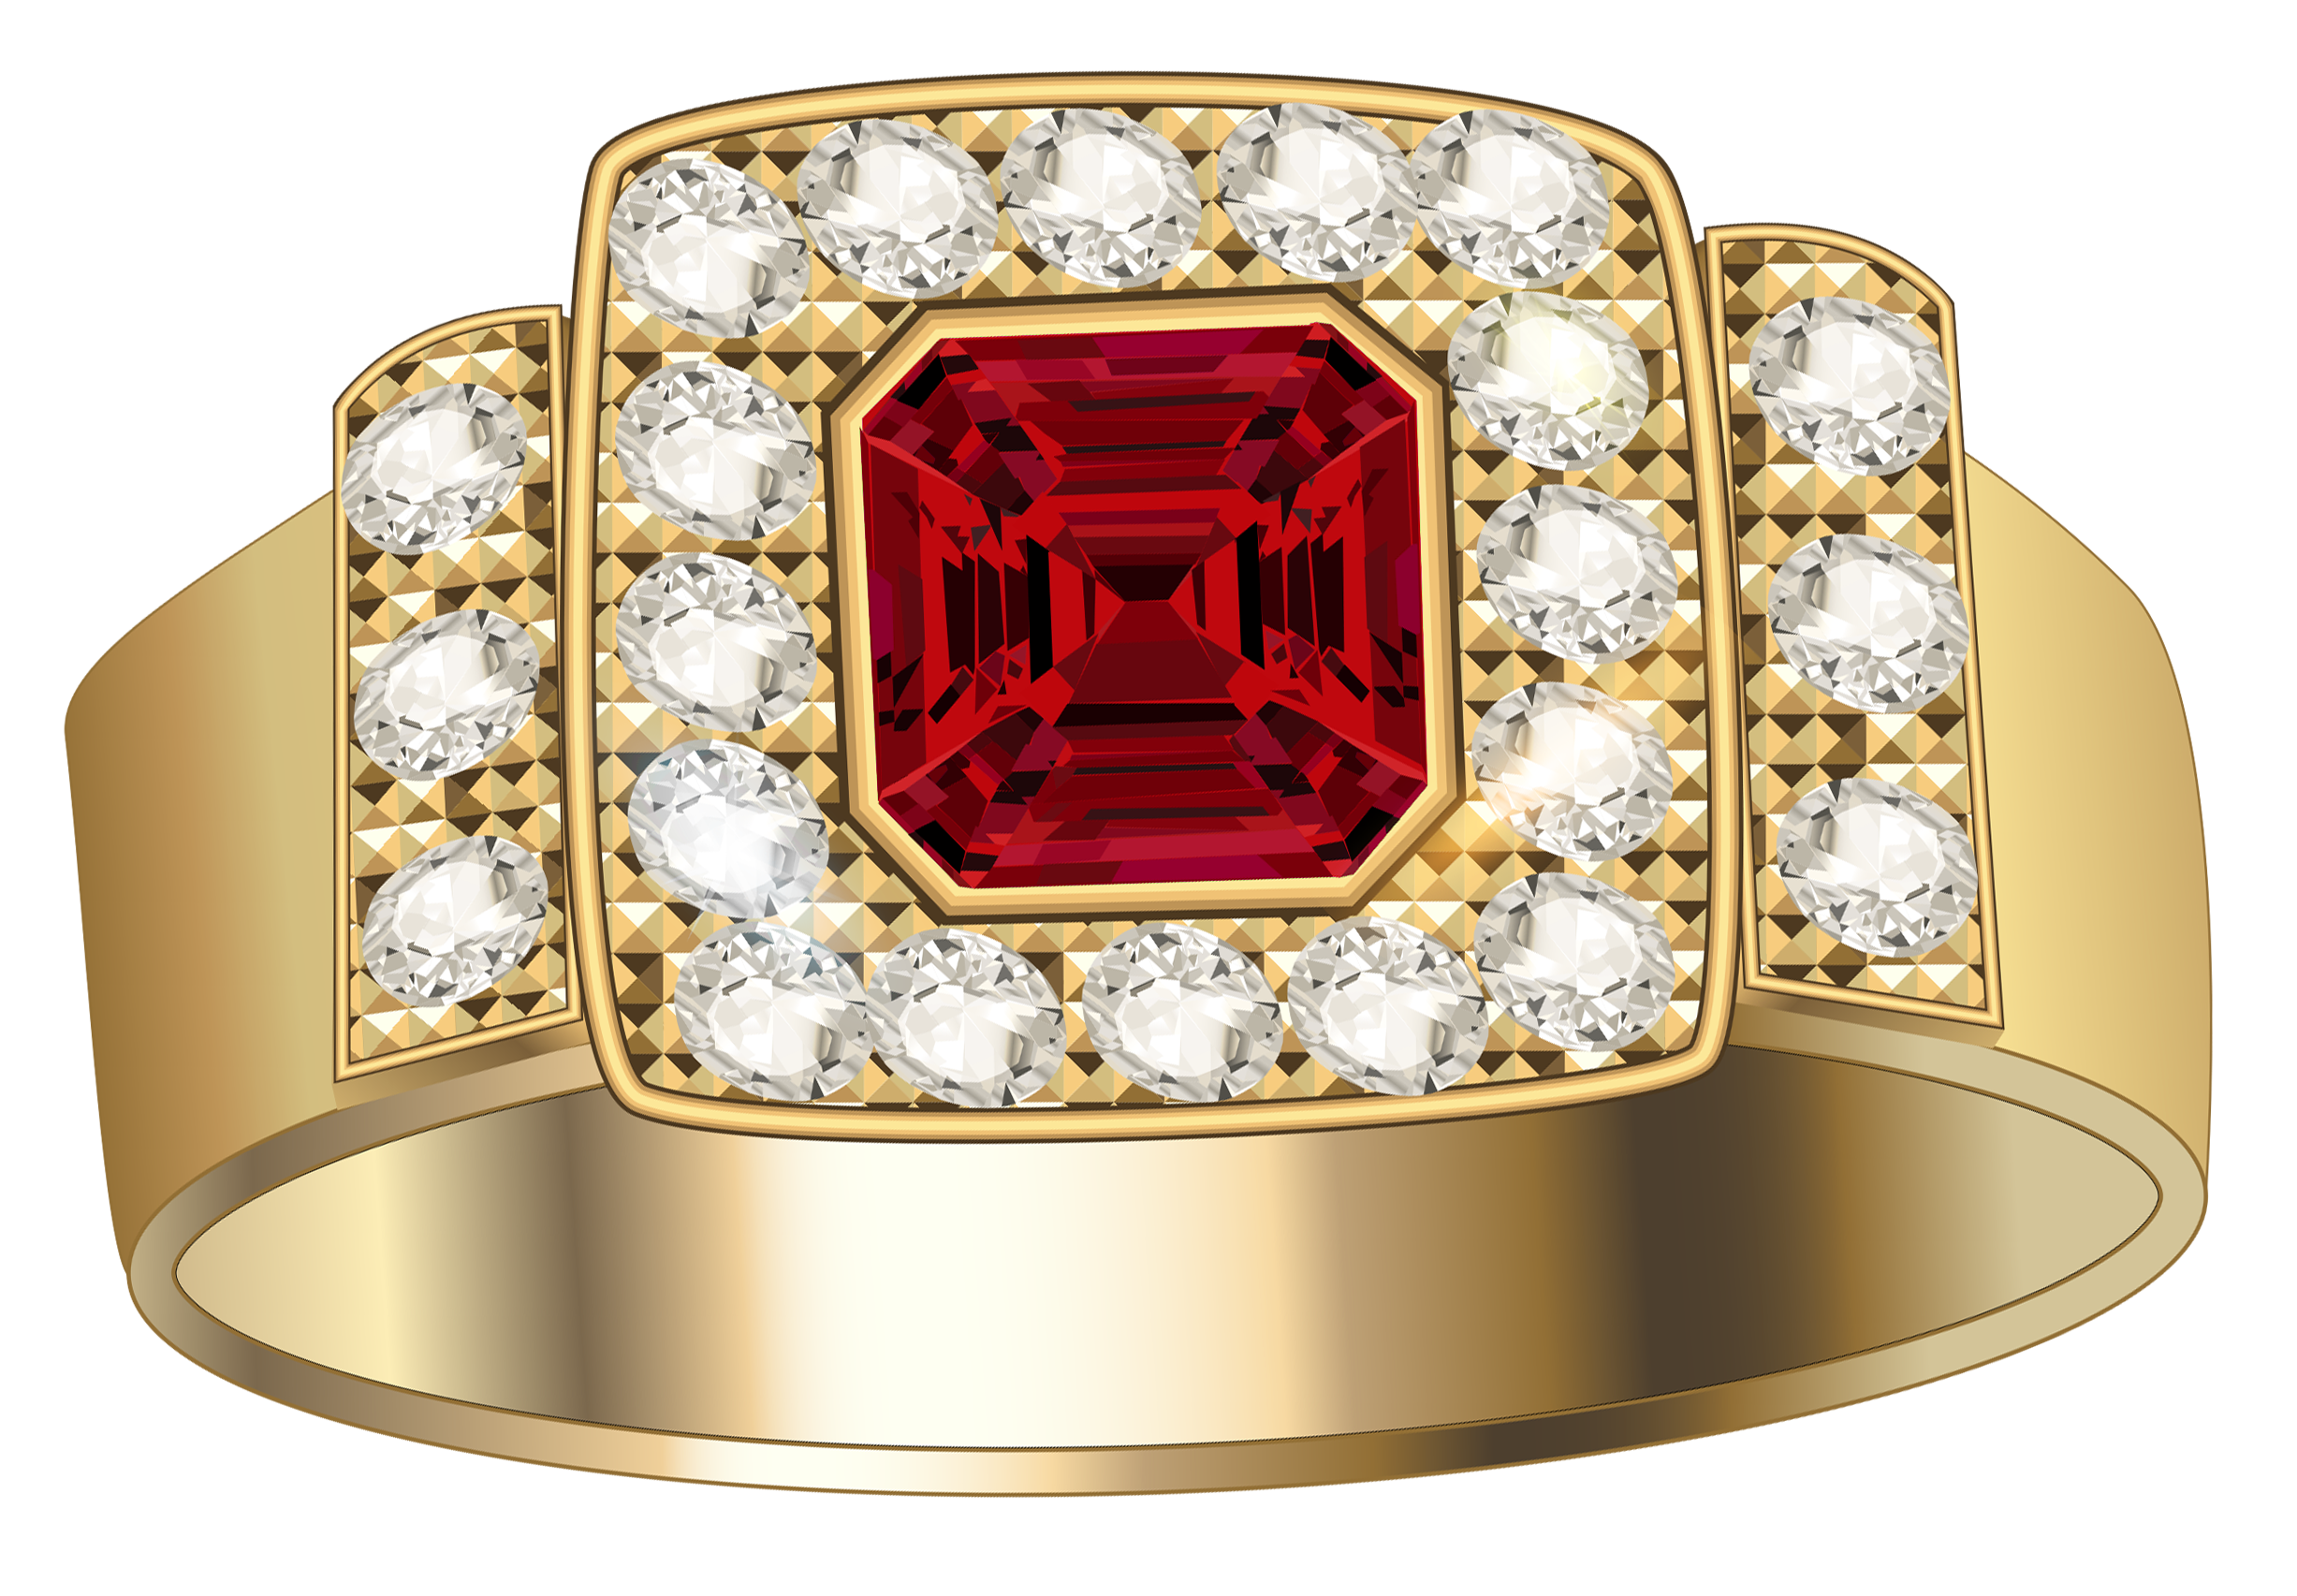 Gold clipart jewels. Ring with diamonds and